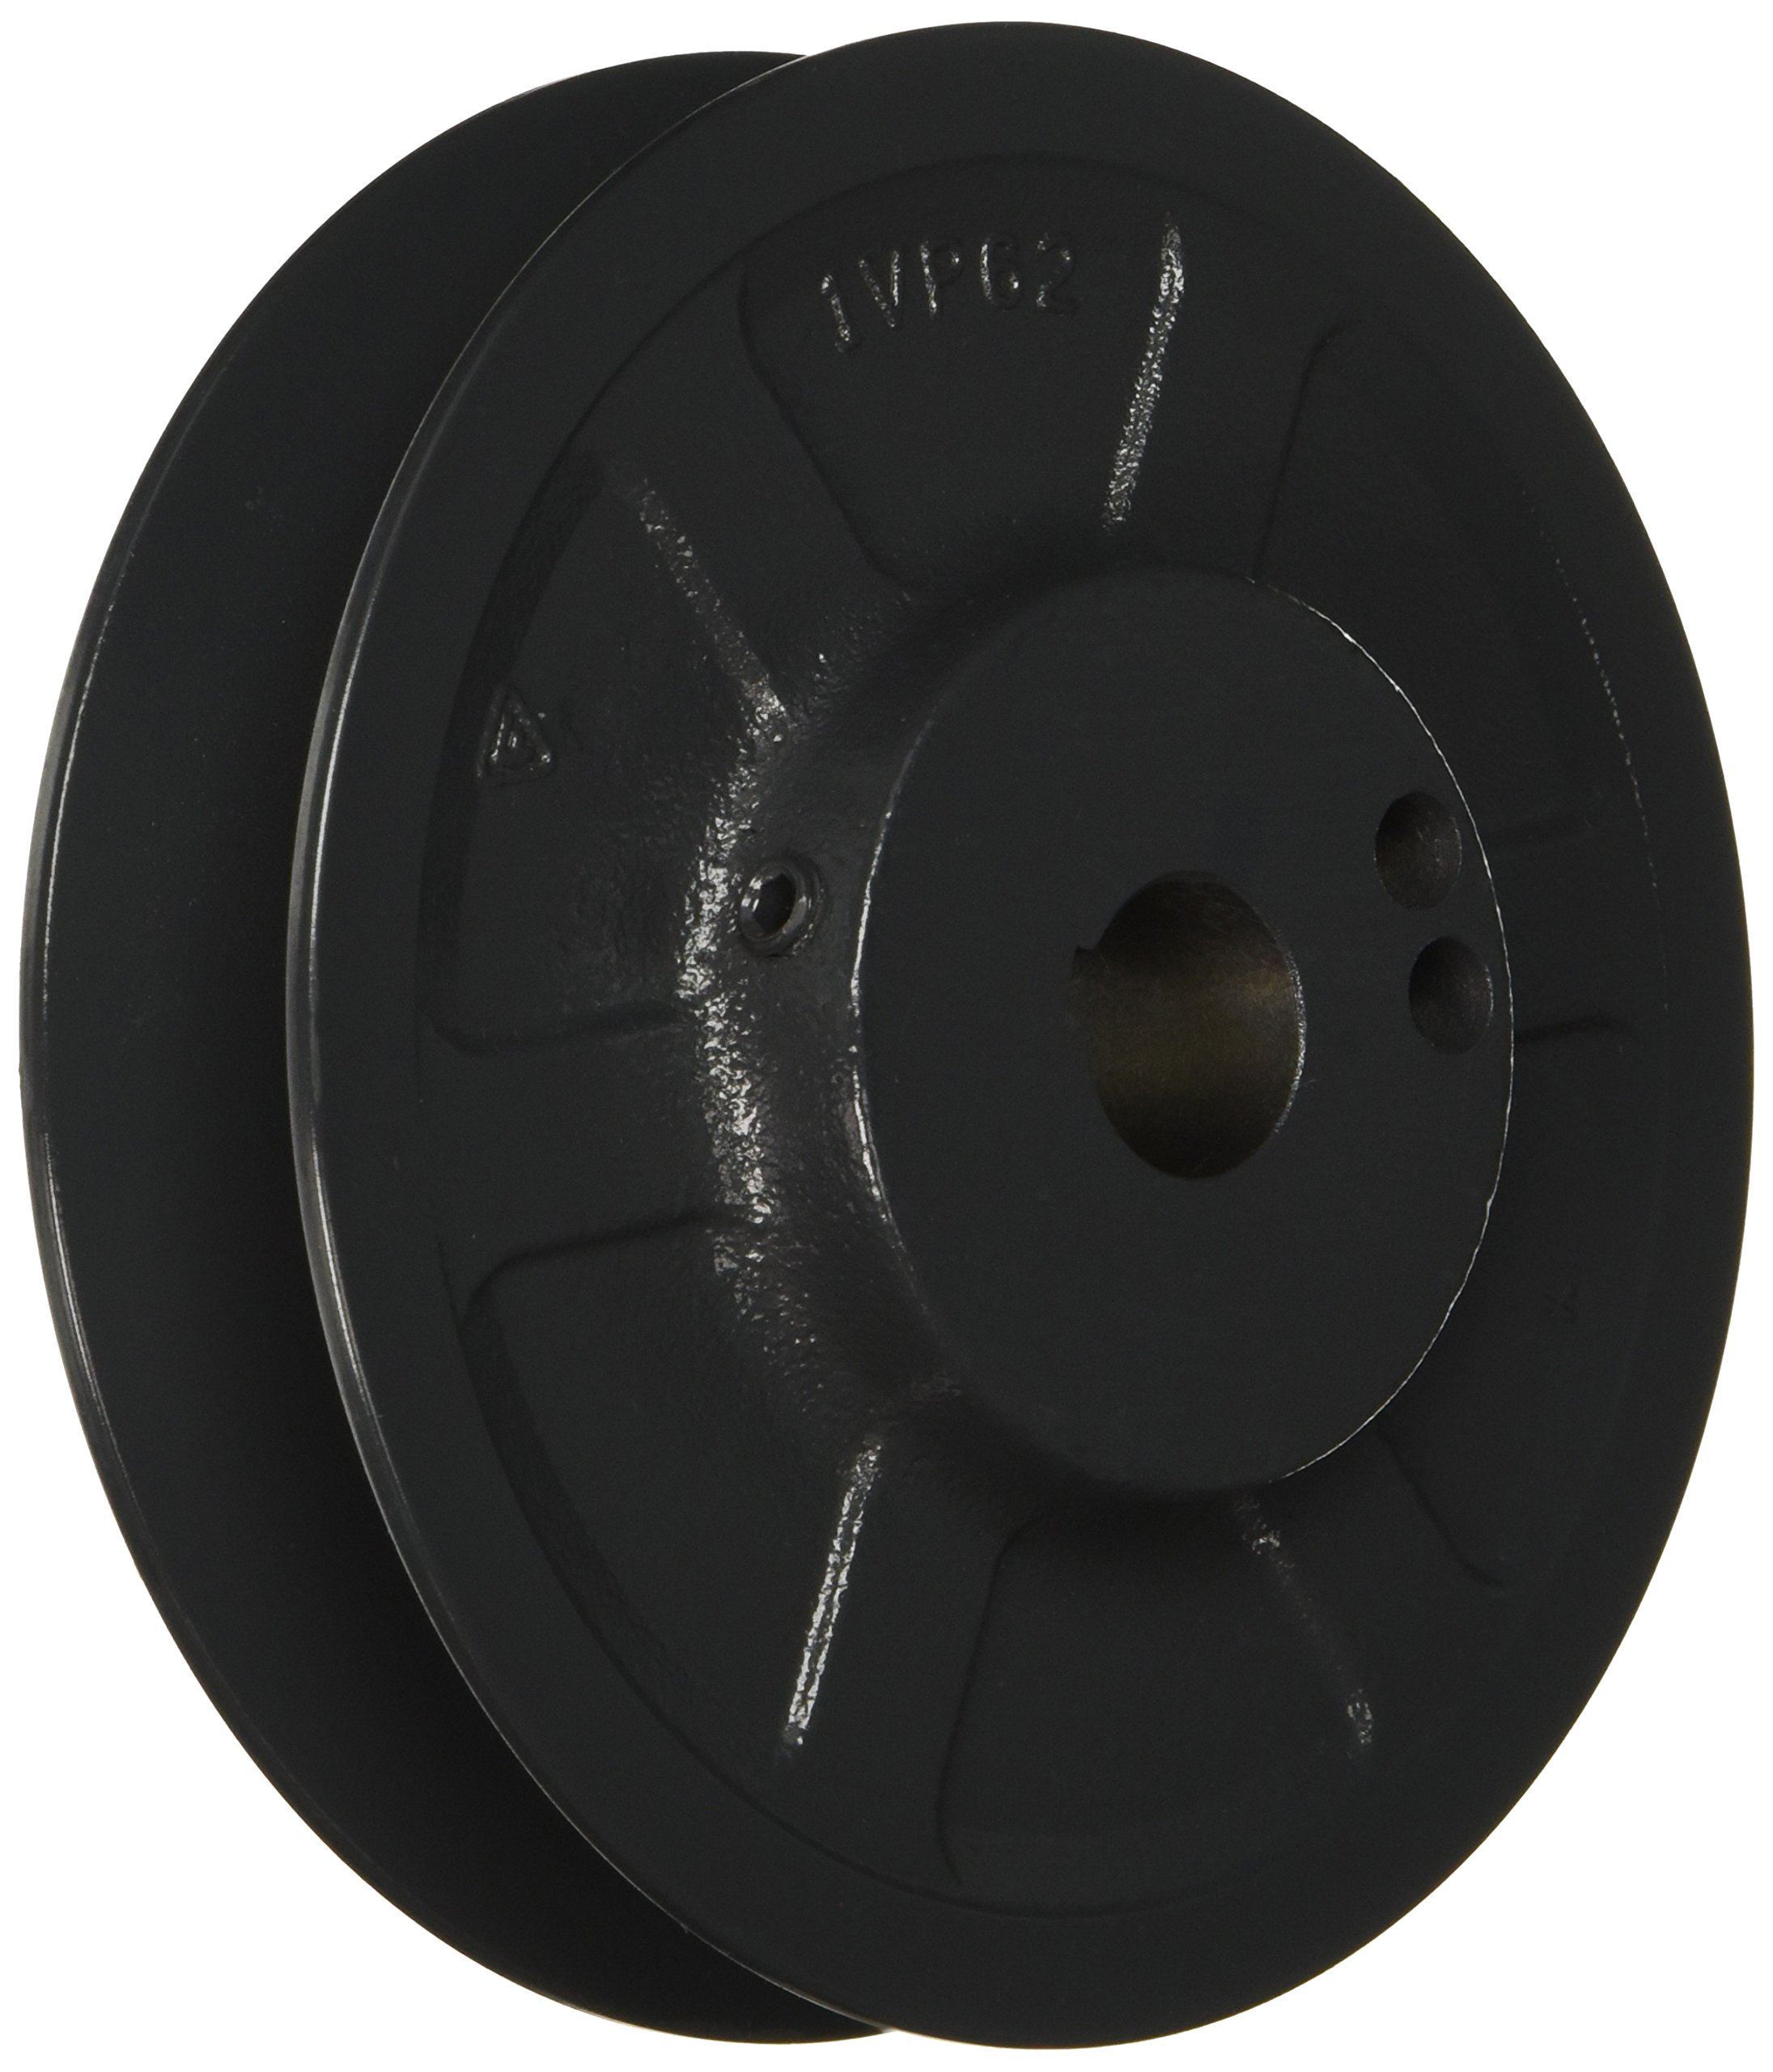 Browning 1VP62X7/8 Variable Pitch Sheave, 1 Groove, Finished Bore, Cast Iron Sheave, for 4L or A, 5L or B, 5V Section Belt